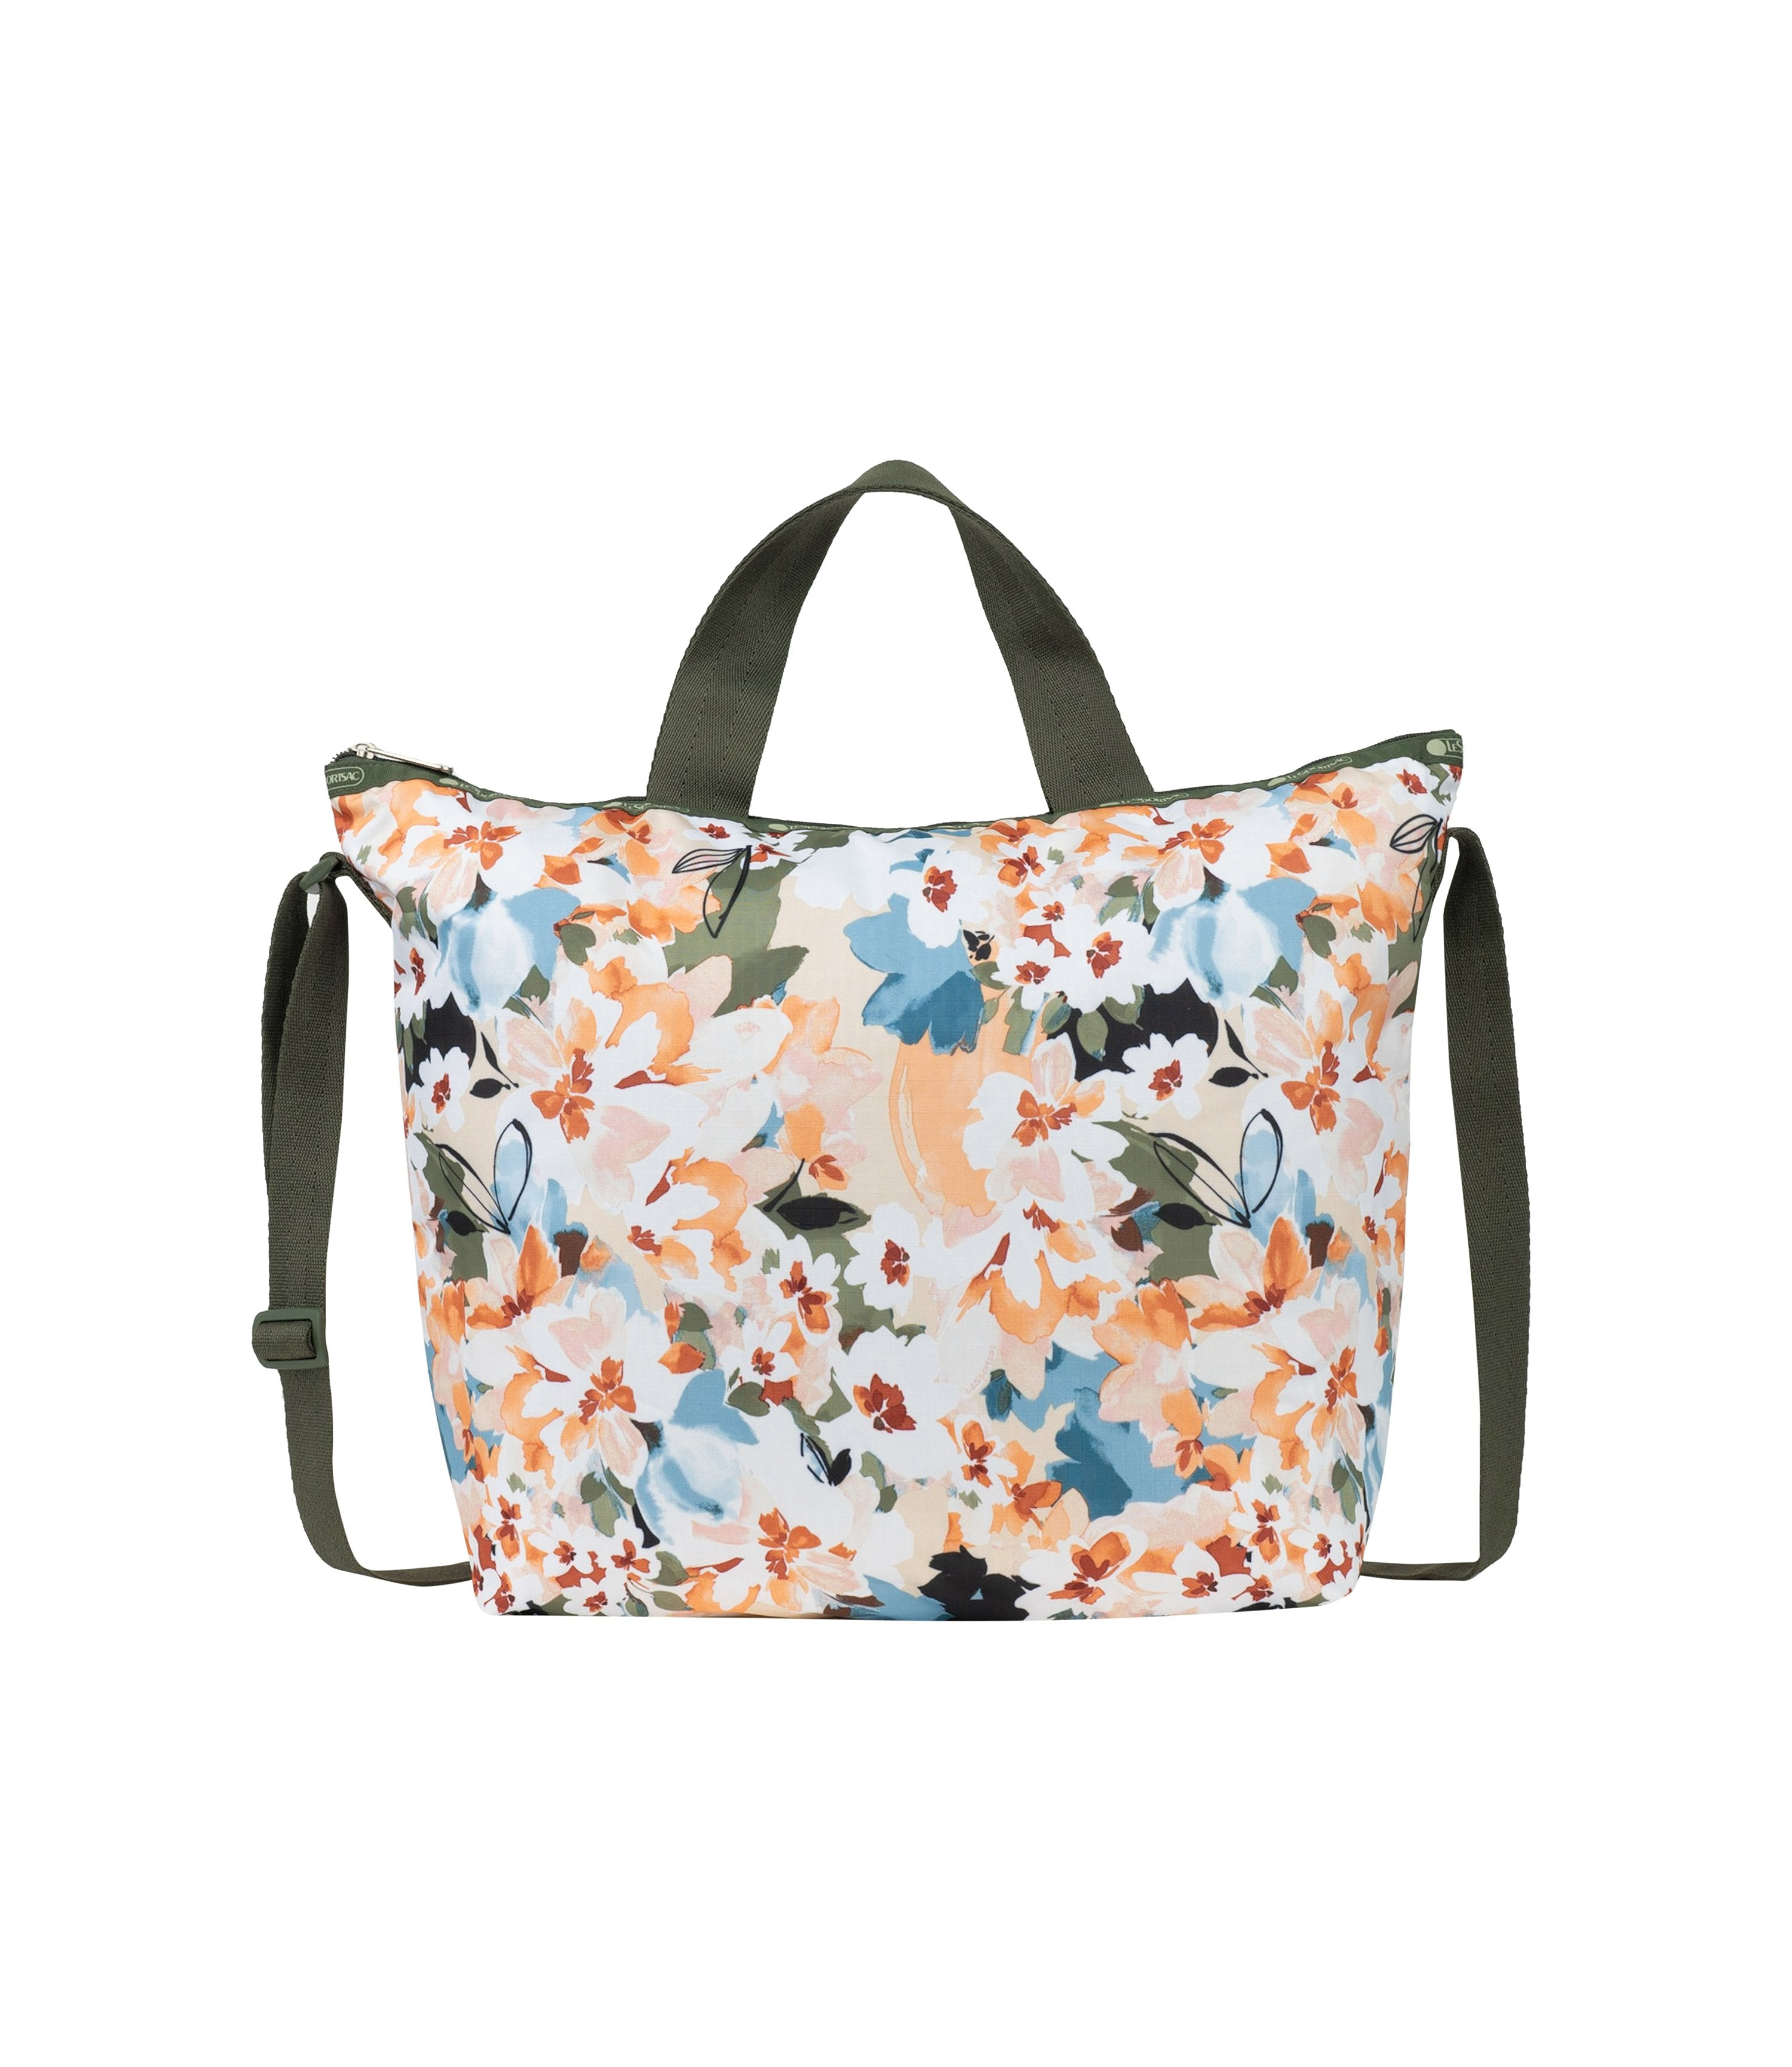 LeSportsac - Totes - Deluxe Easy Carry Tote - Painterly Blooms print